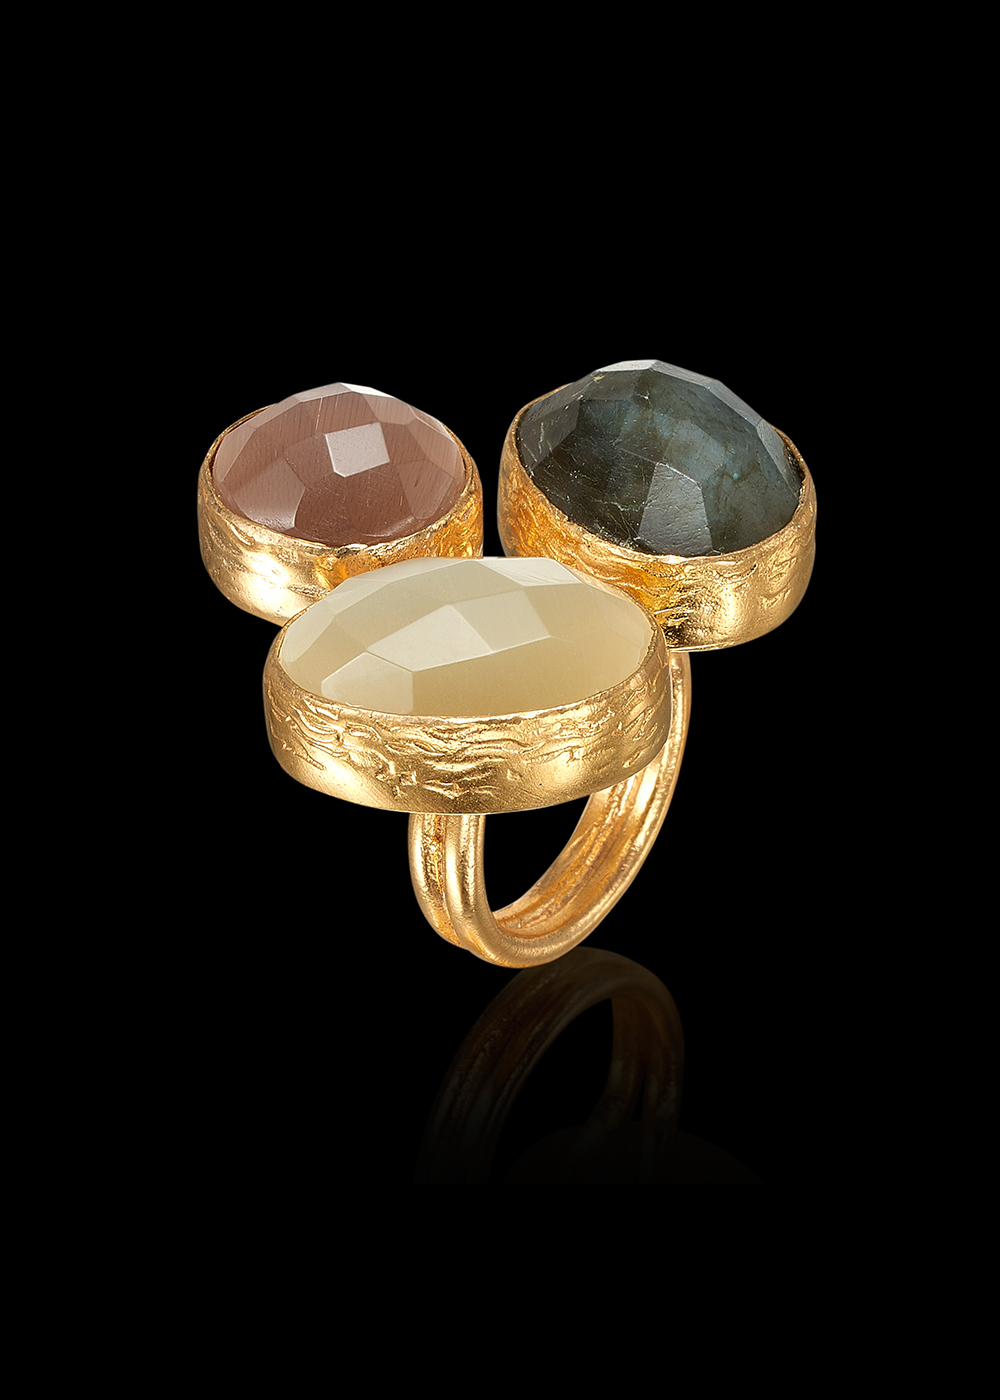 KYBRA ring with Smokey Topaz, White Calcedonia and Labradorite